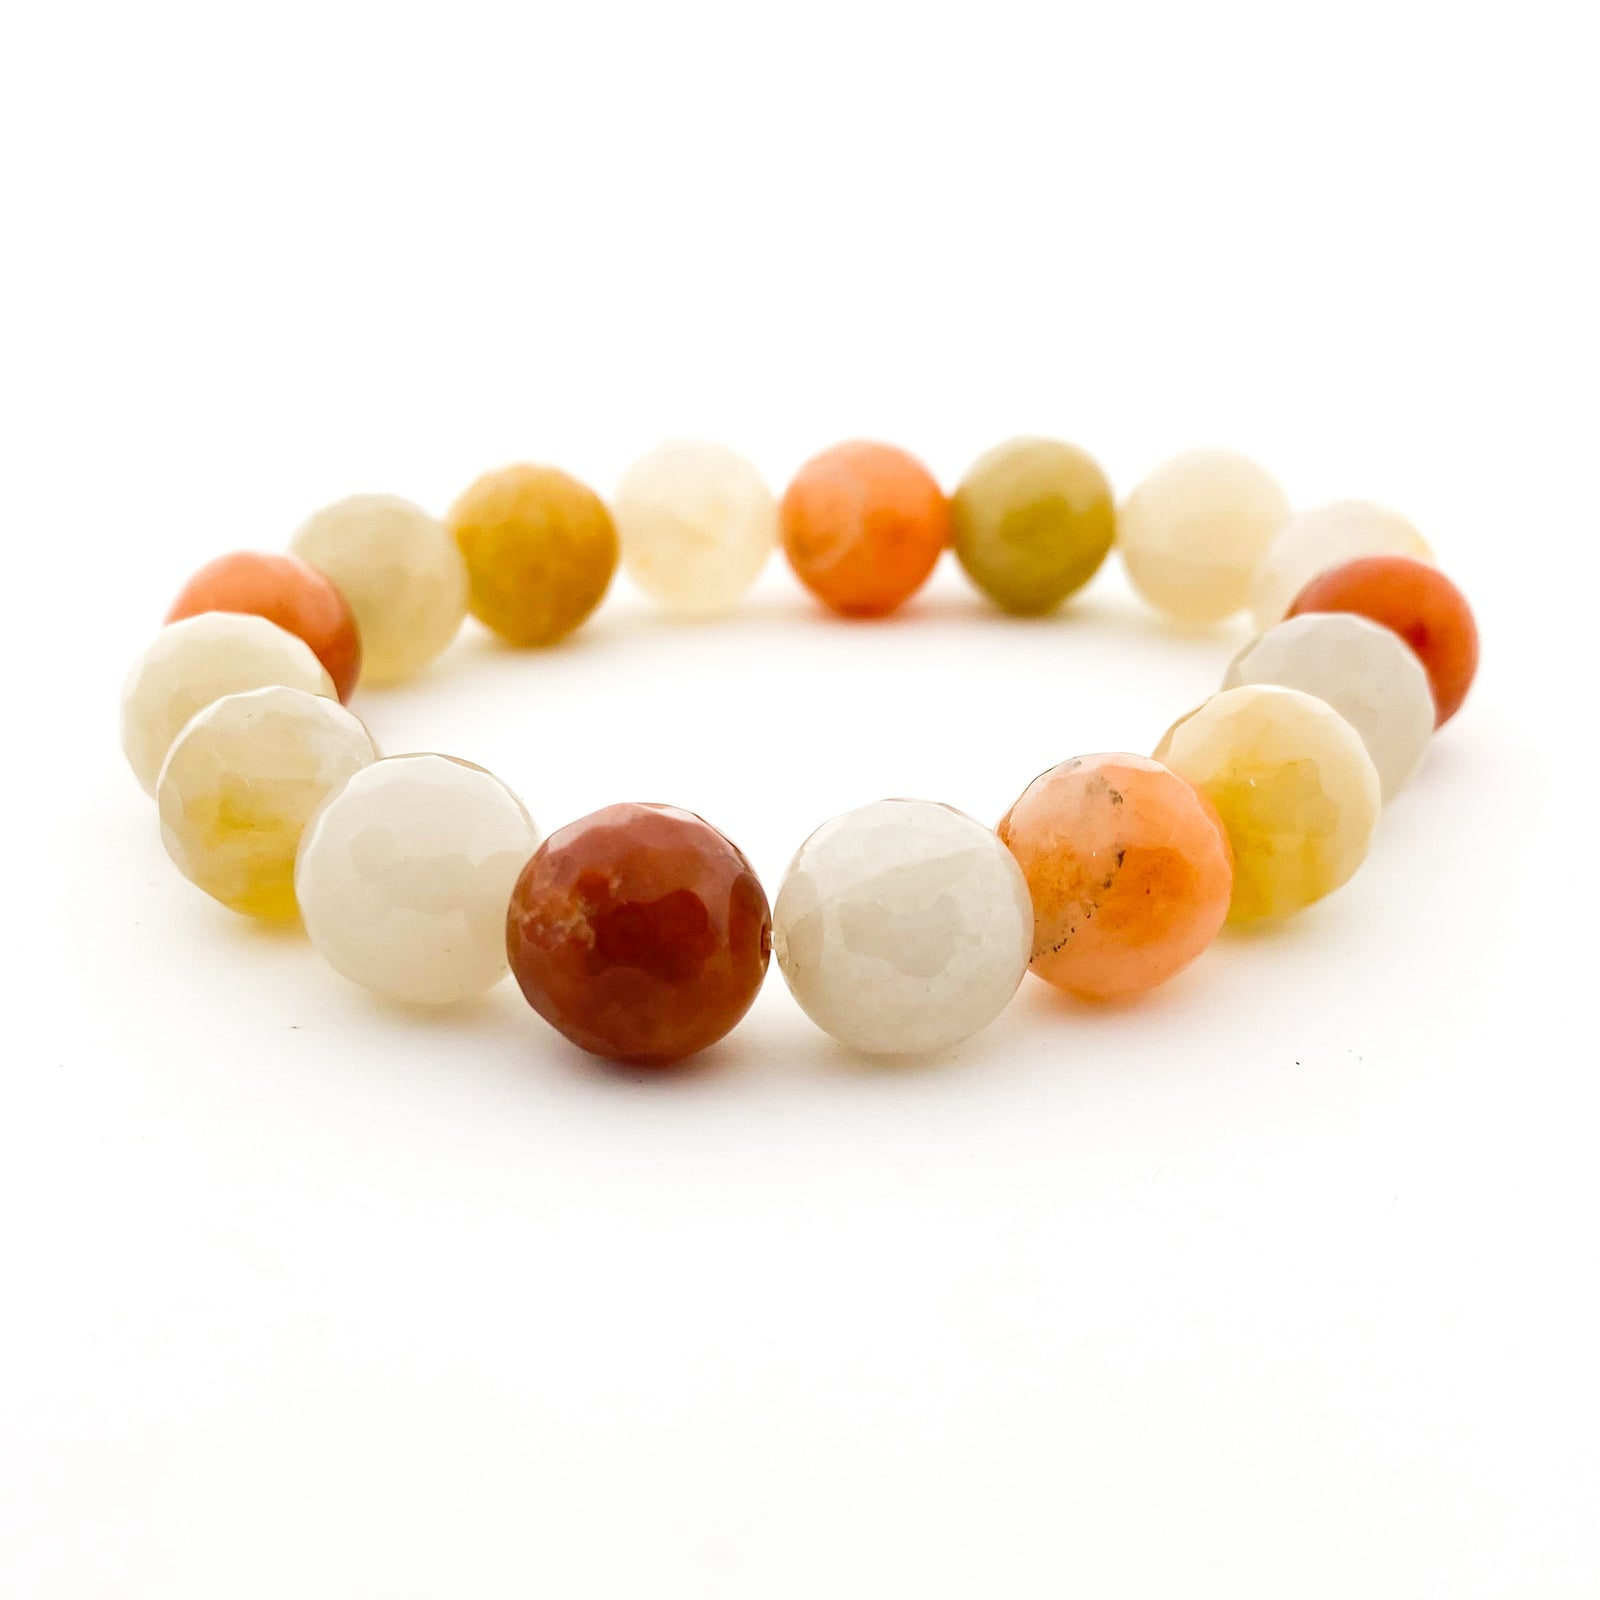 COLORFUL FACETED AGATE STONE BRACELETS | 14MM | STYLE OPTIONS